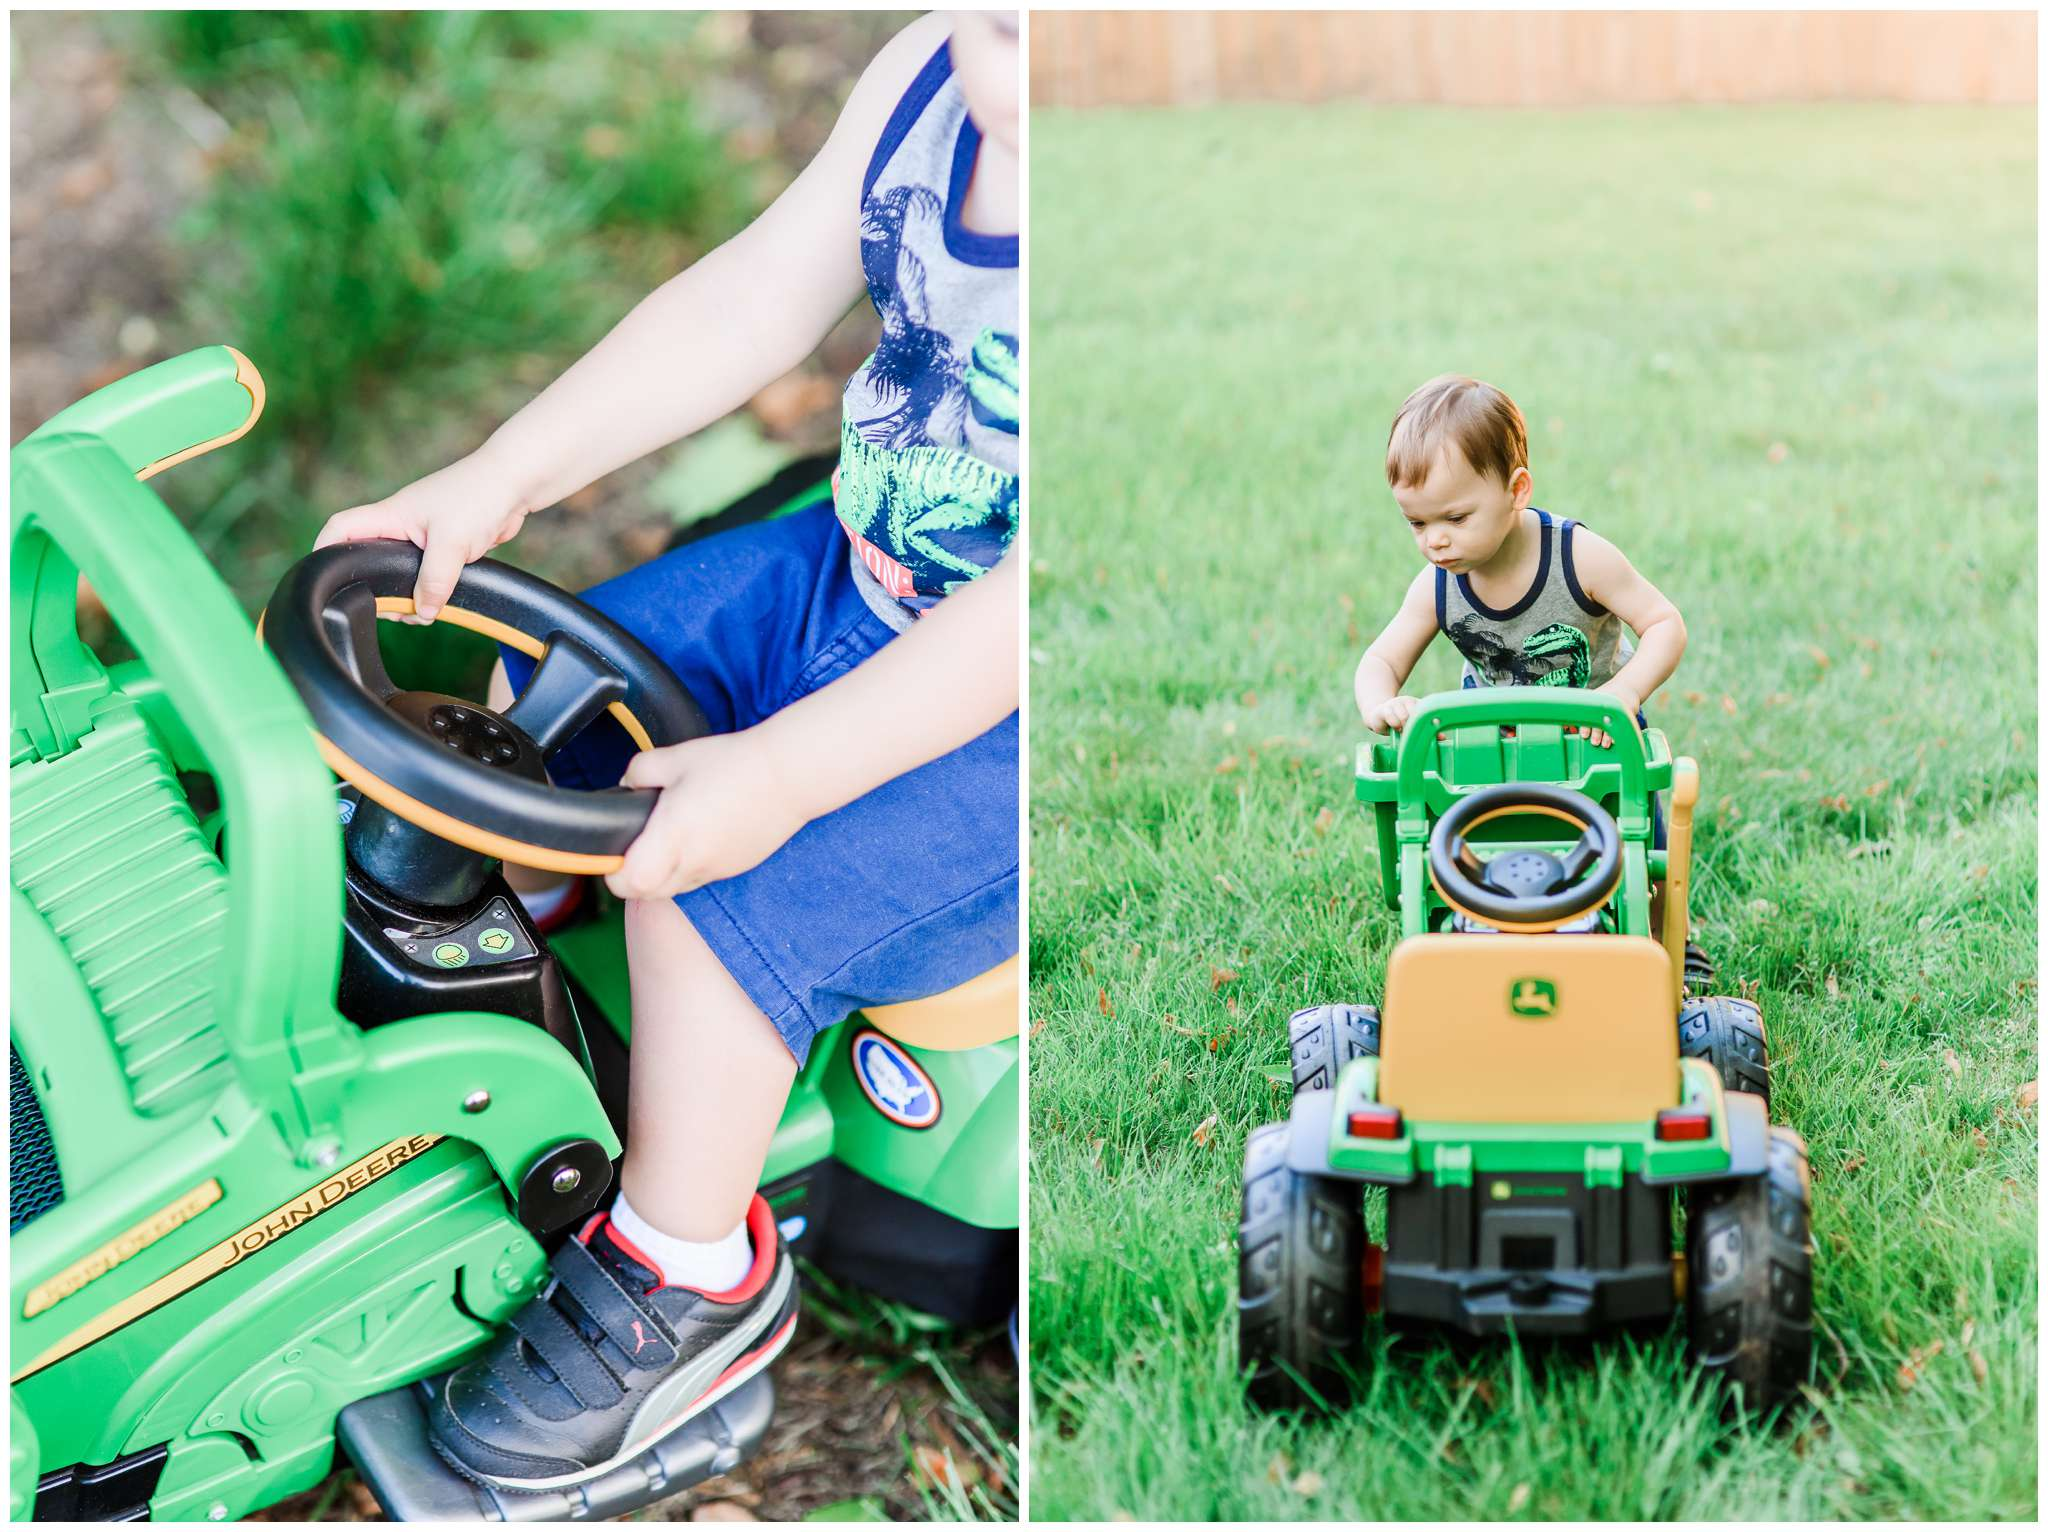 Liam and Tractor_4022.jpg